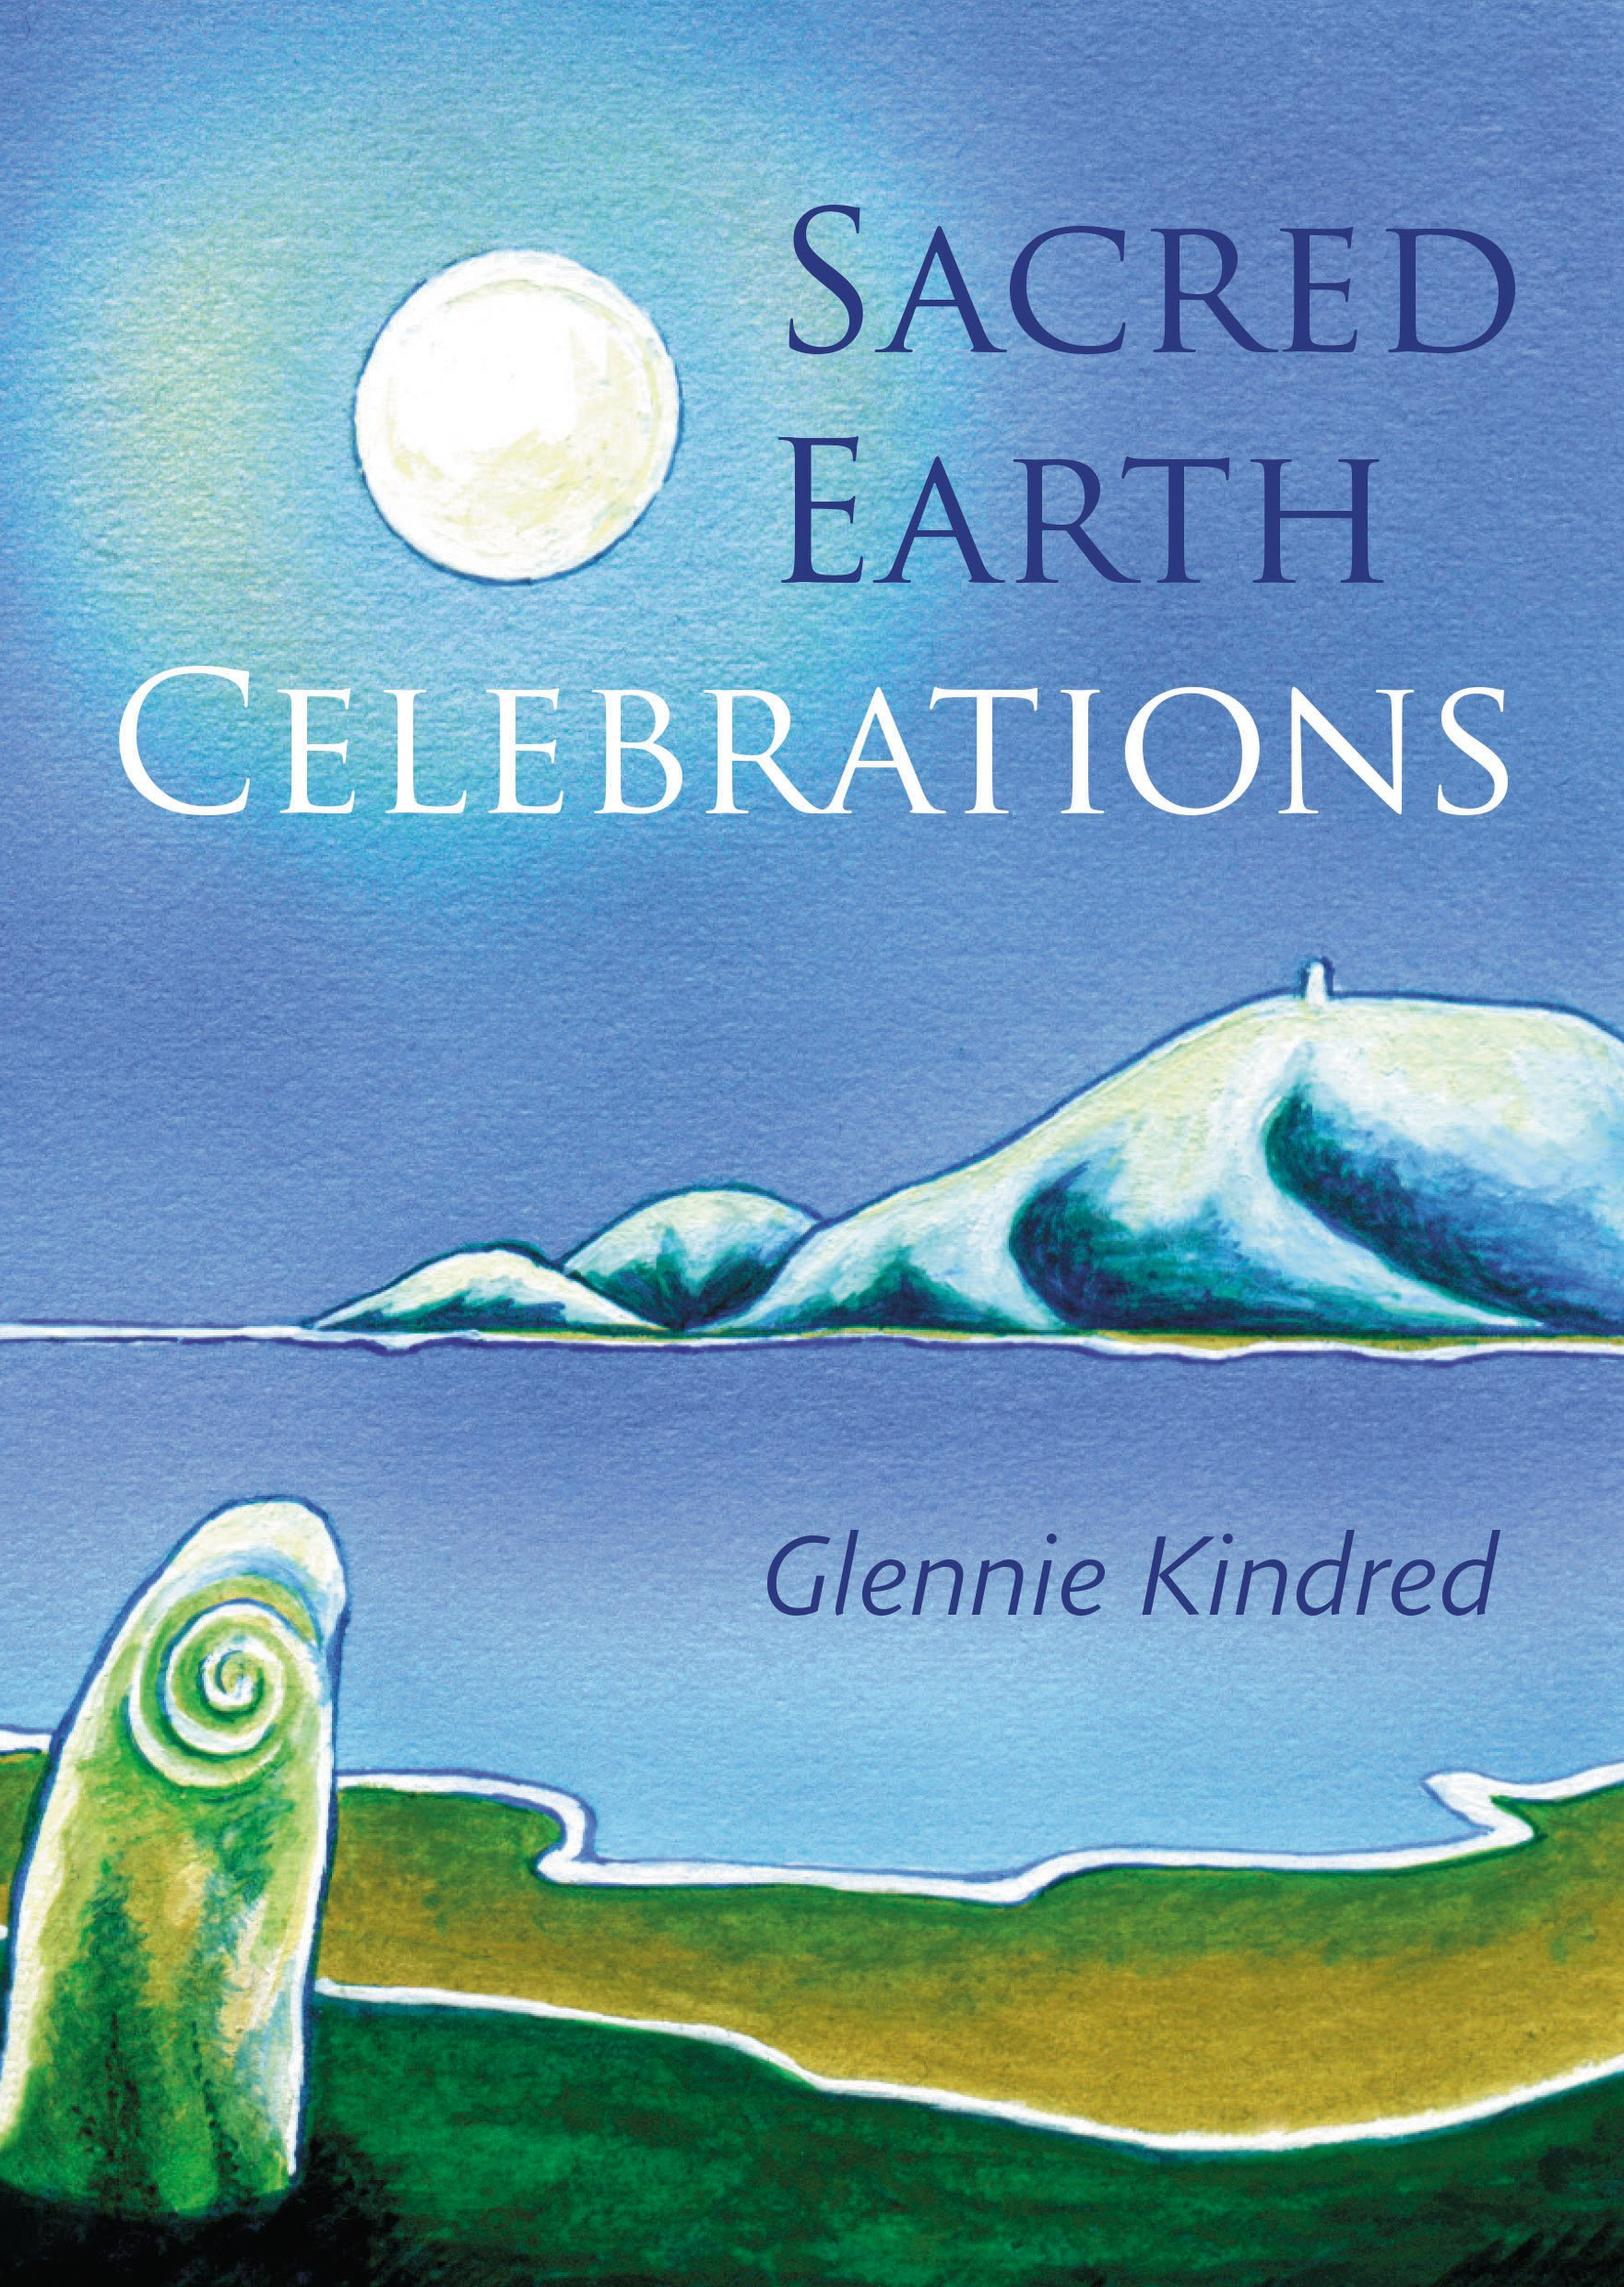 The Sacred Earth Celebrations